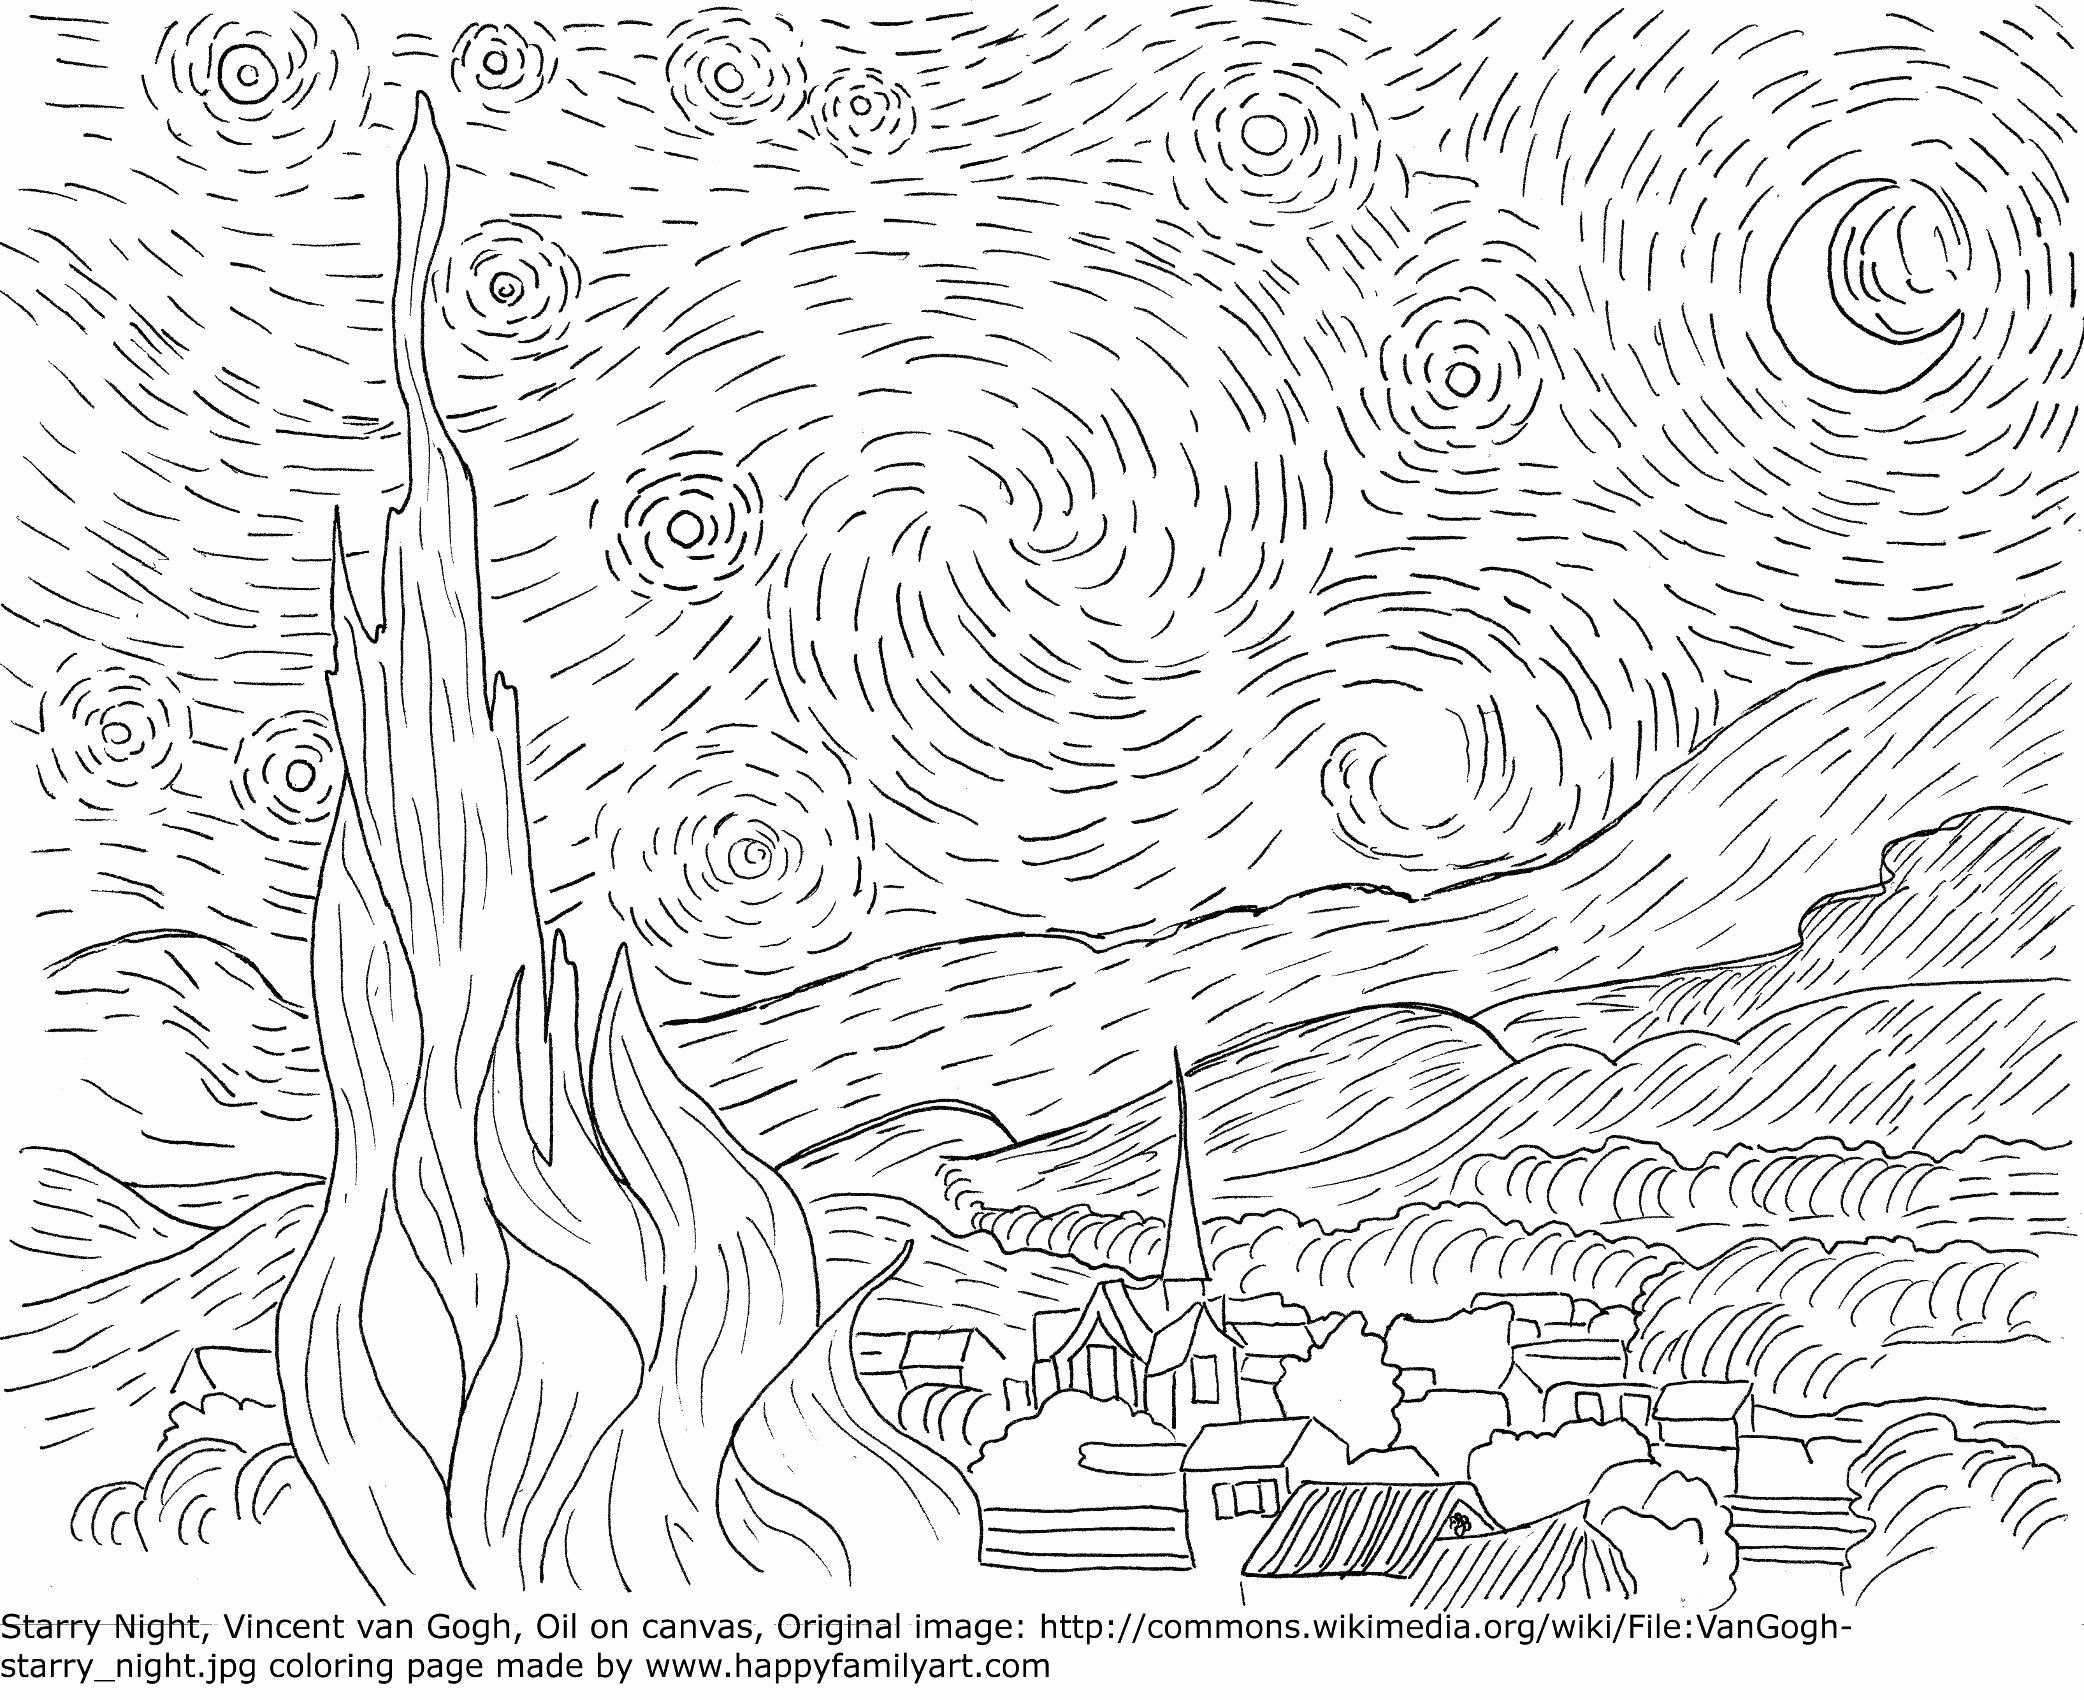 Starry Night Coloring Page Inspirational Original And Fun Coloring Pages I Like In 2020 Van Gogh Coloring Starry Night Van Gogh Famous Art Coloring